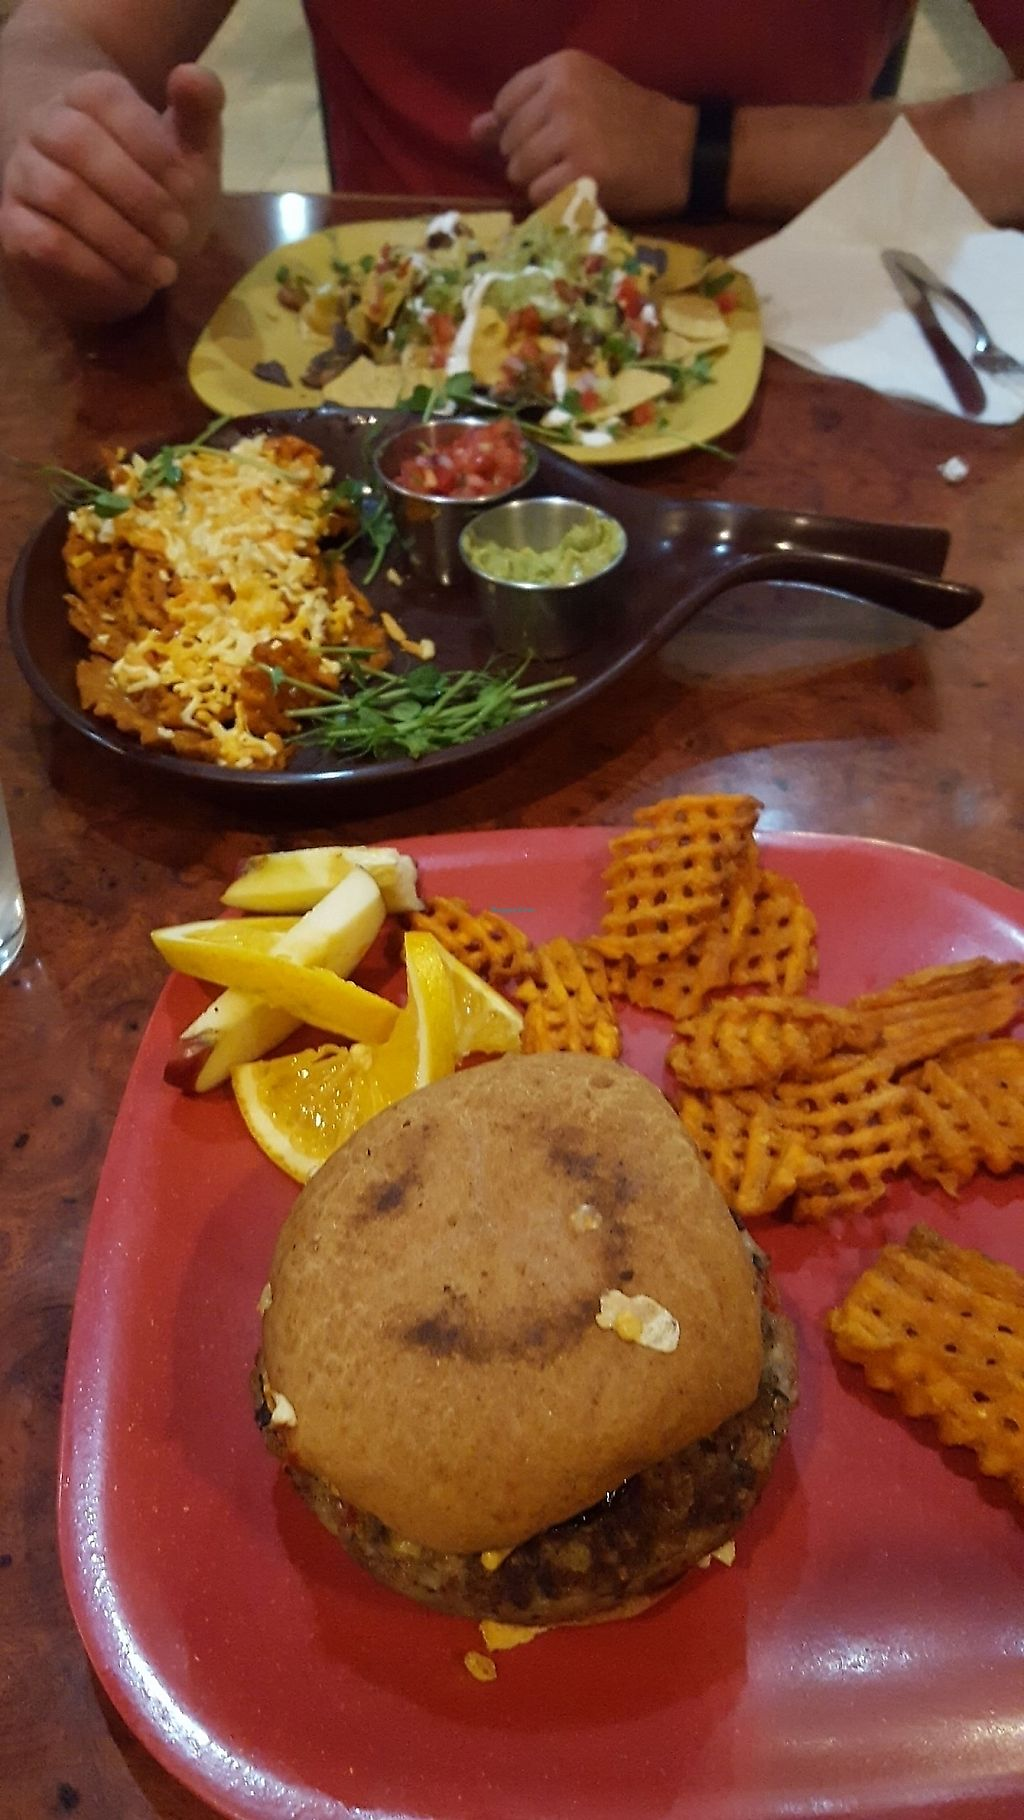 """Photo of Go Vegan Cafe  by <a href=""""/members/profile/BellaMay"""">BellaMay</a> <br/>eggplant burger, cheese fries and nachos <br/> August 8, 2017  - <a href='/contact/abuse/image/65093/388740'>Report</a>"""